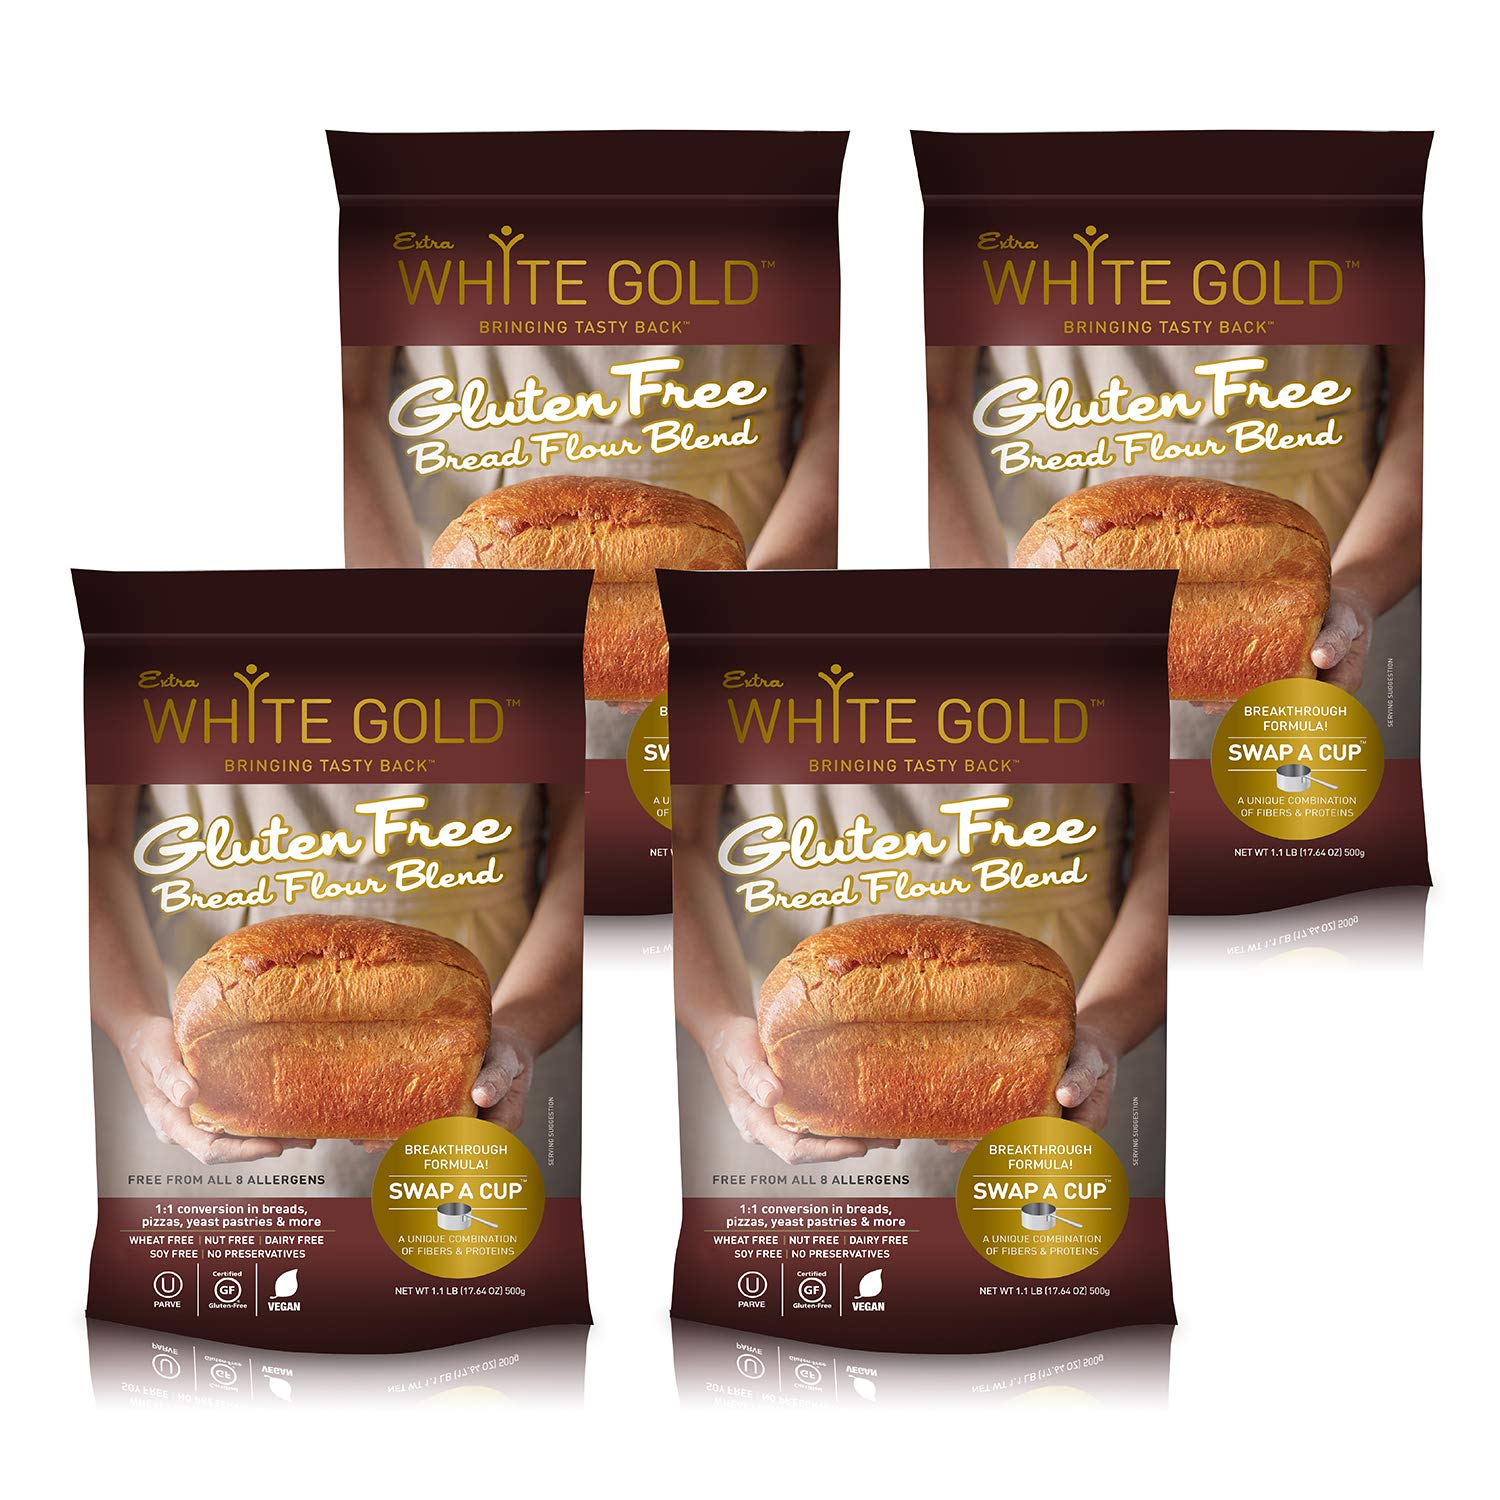 Extra White Gold Gluten Free Bread Flour Blend - For Breads, Yeasted Pastries , Pizza, Focaccia - [Kosher] [Gluten Free] [Vegan] [Soy Free] [Nut Free] [Dairy Free] - 1.1 Pound (4 pack) by Extra White Gold